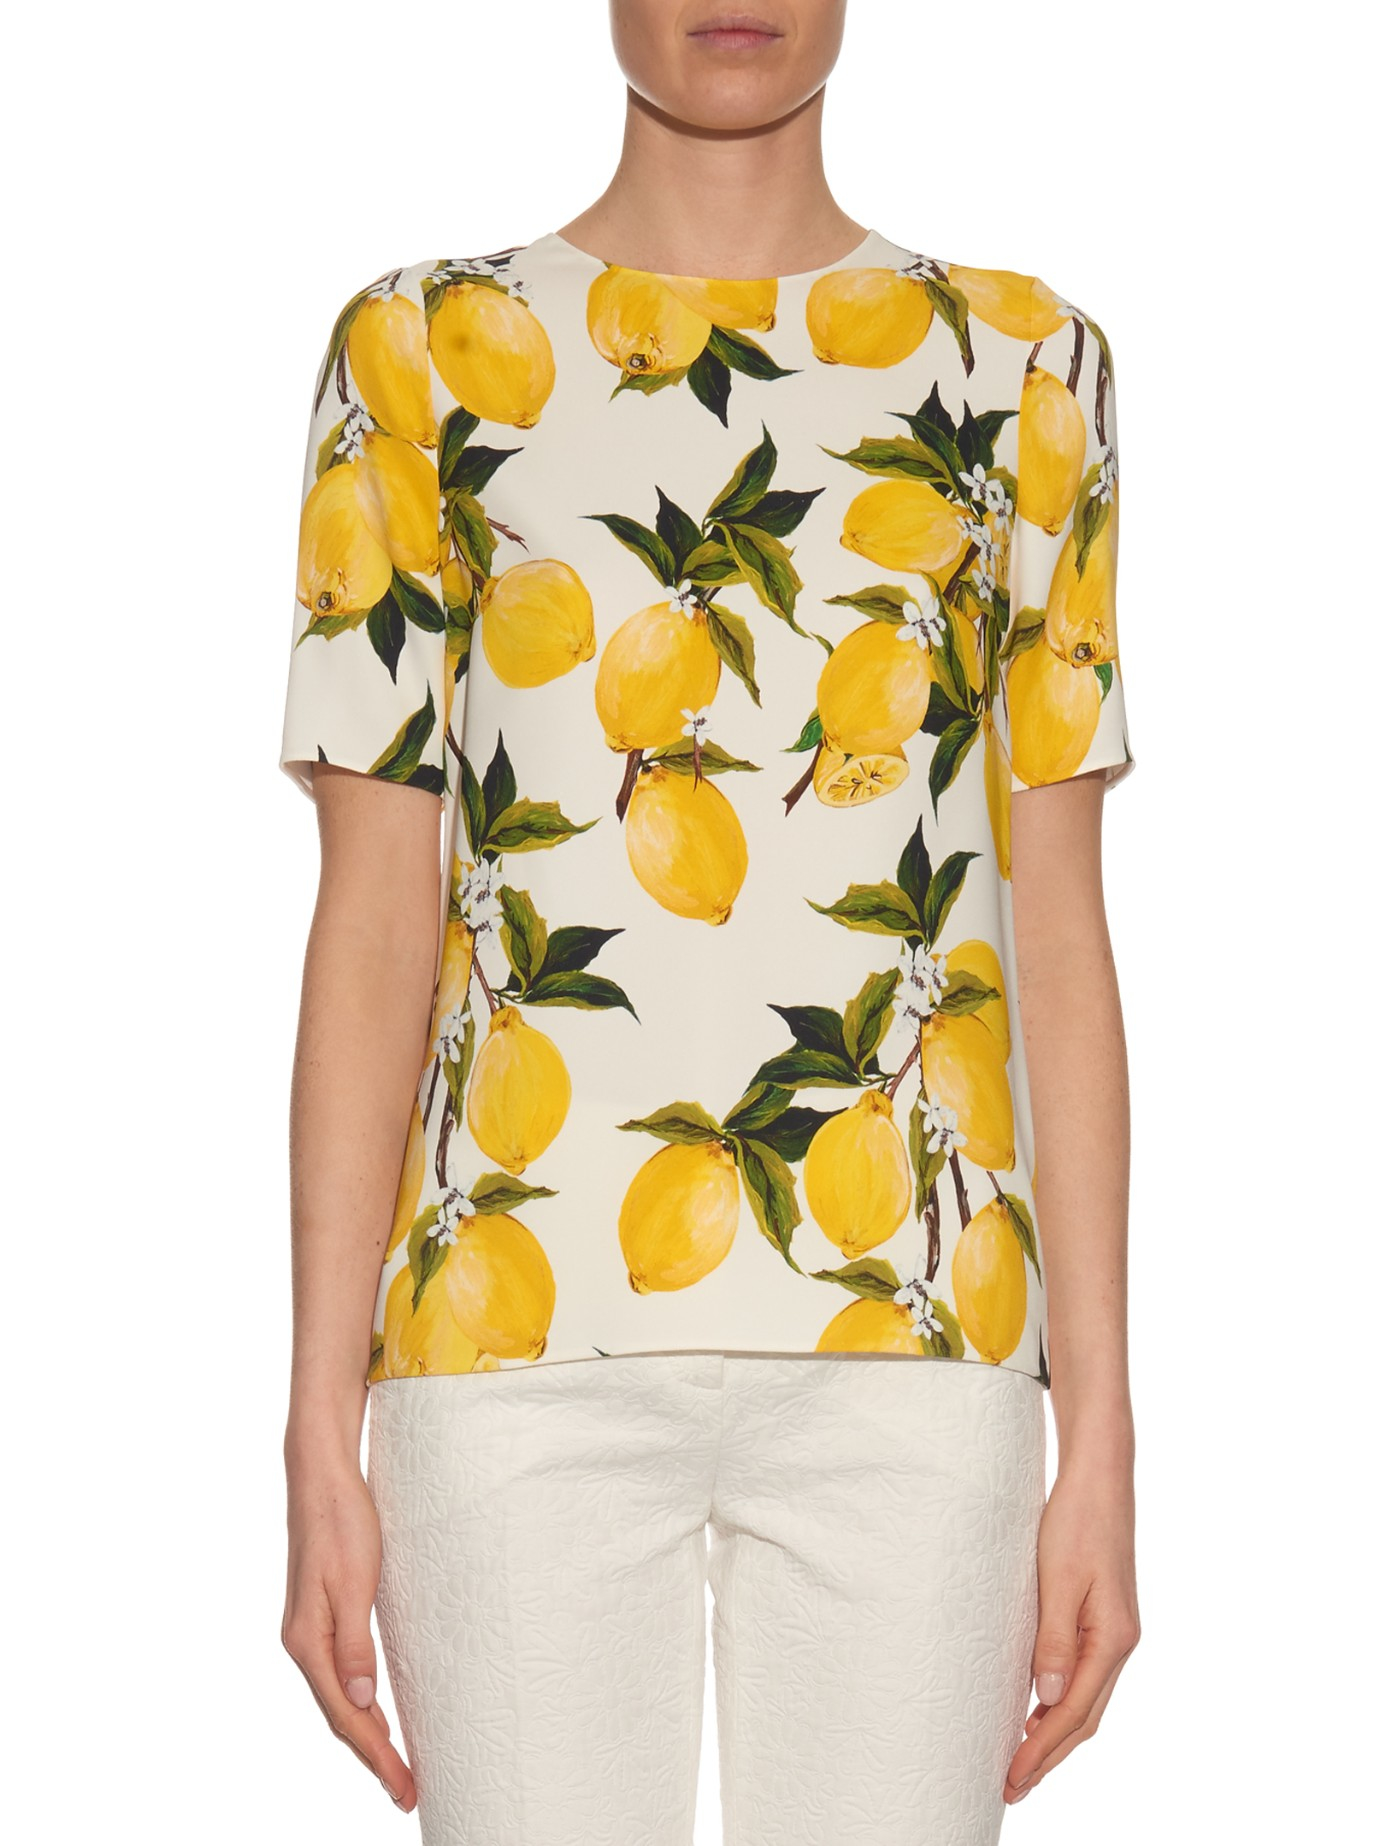 Lyst - Dolce   Gabbana Lemon-print Floral Short-sleeved Top in White 0ec20d5a08433